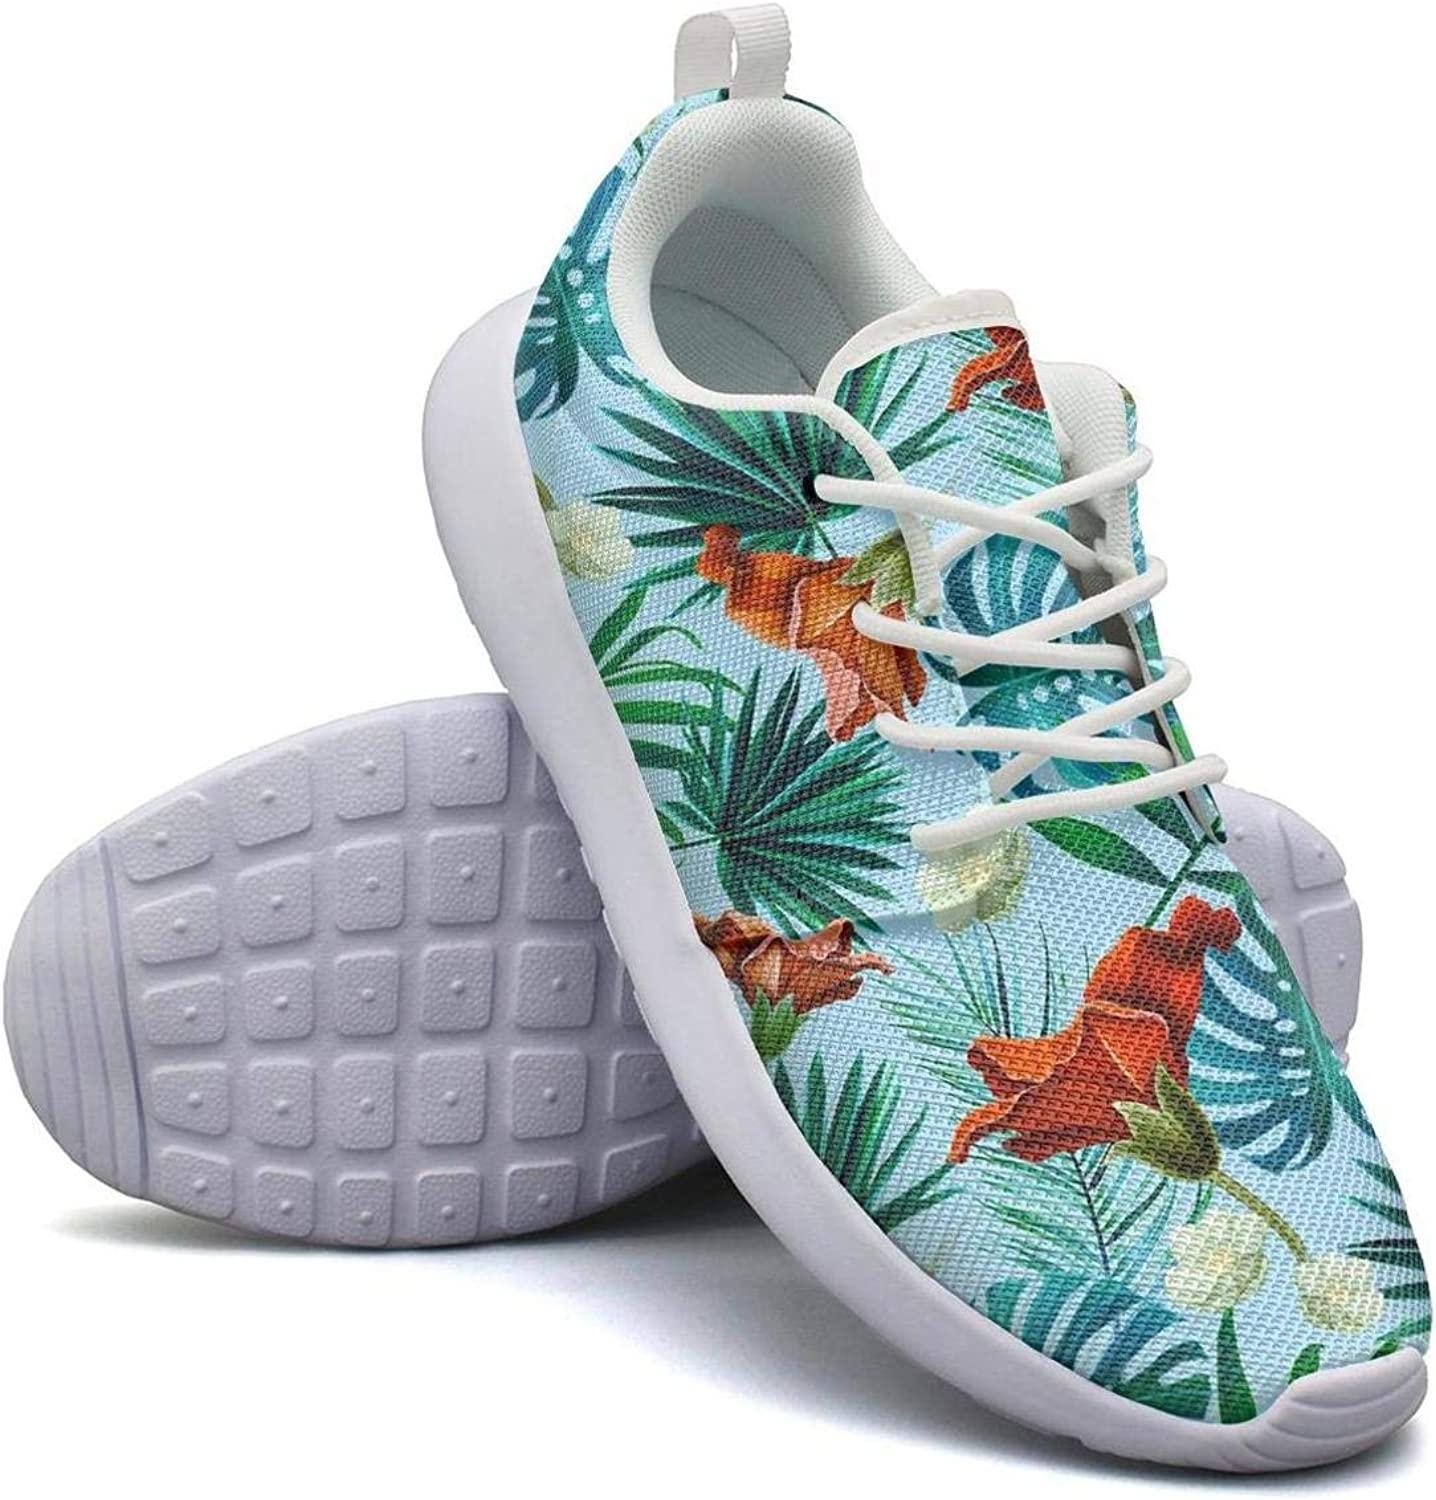 CHALi99 Breathable Woman Lightweight Mesh shoes Tropical Leaves color Ink Pattern Sneakers Walking Lace-Up